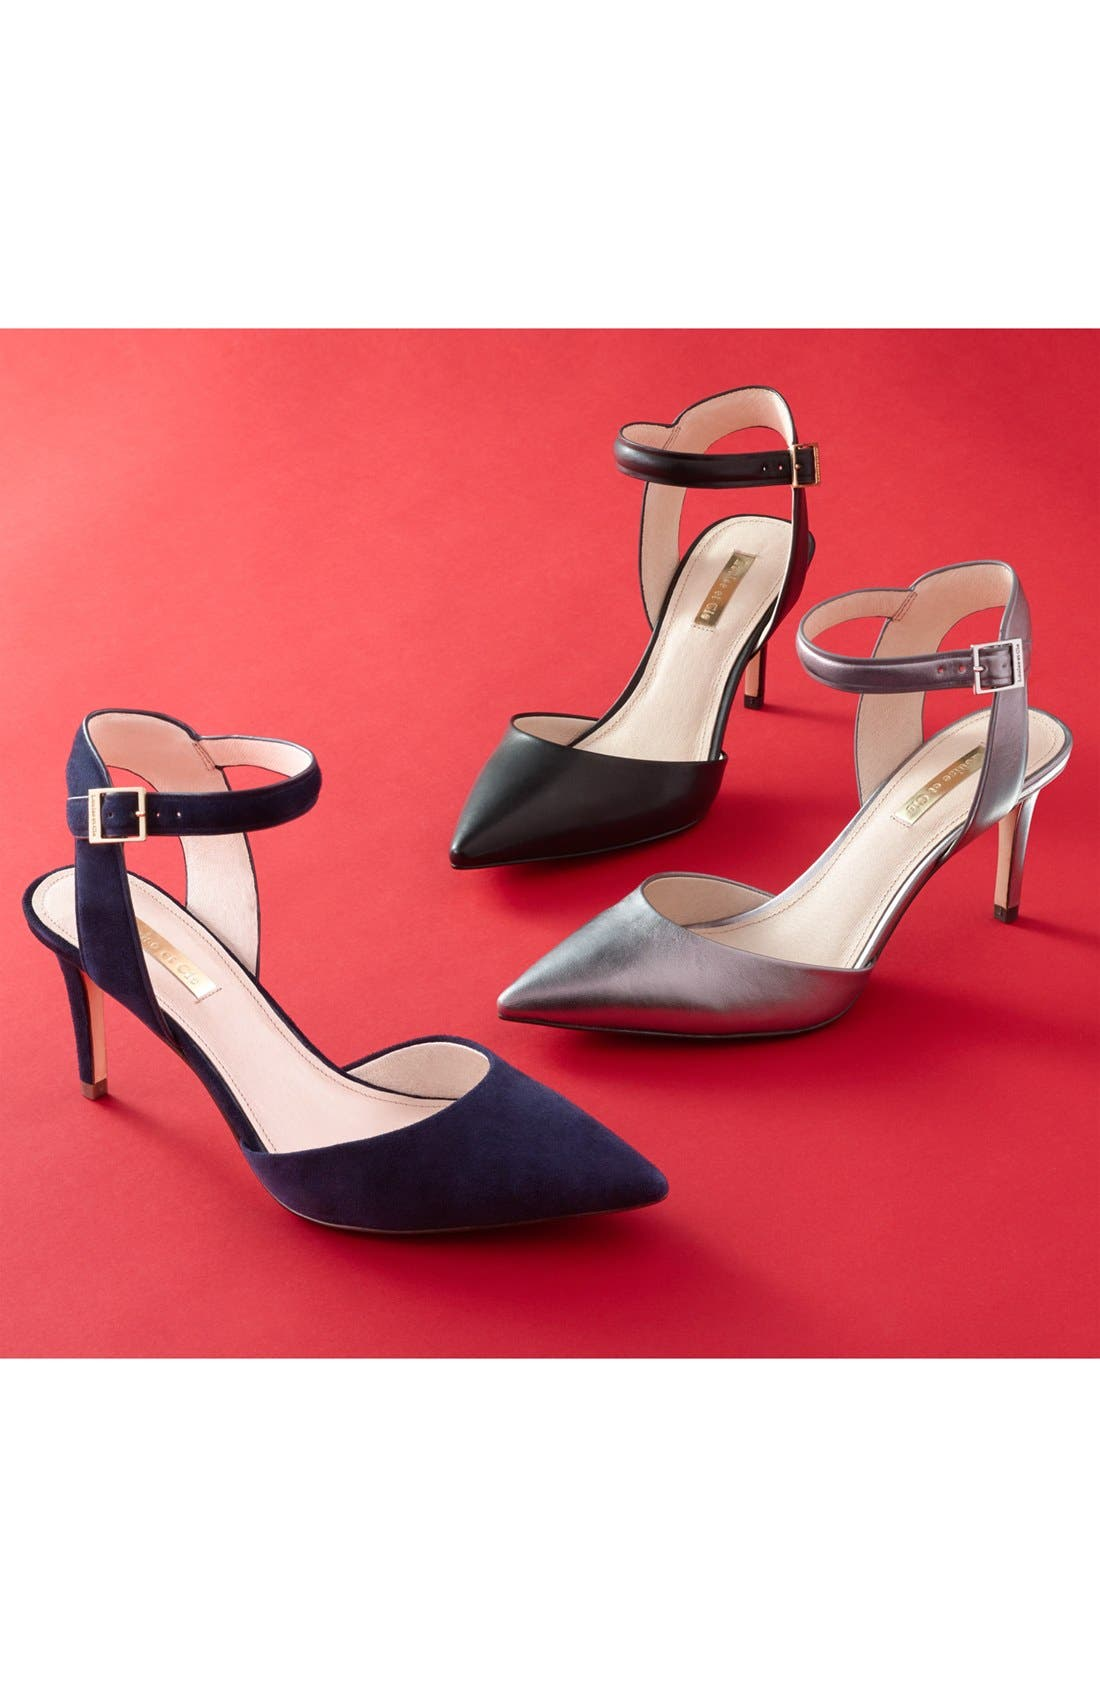 Kota Ankle Strap Pump,                             Alternate thumbnail 7, color,                             002